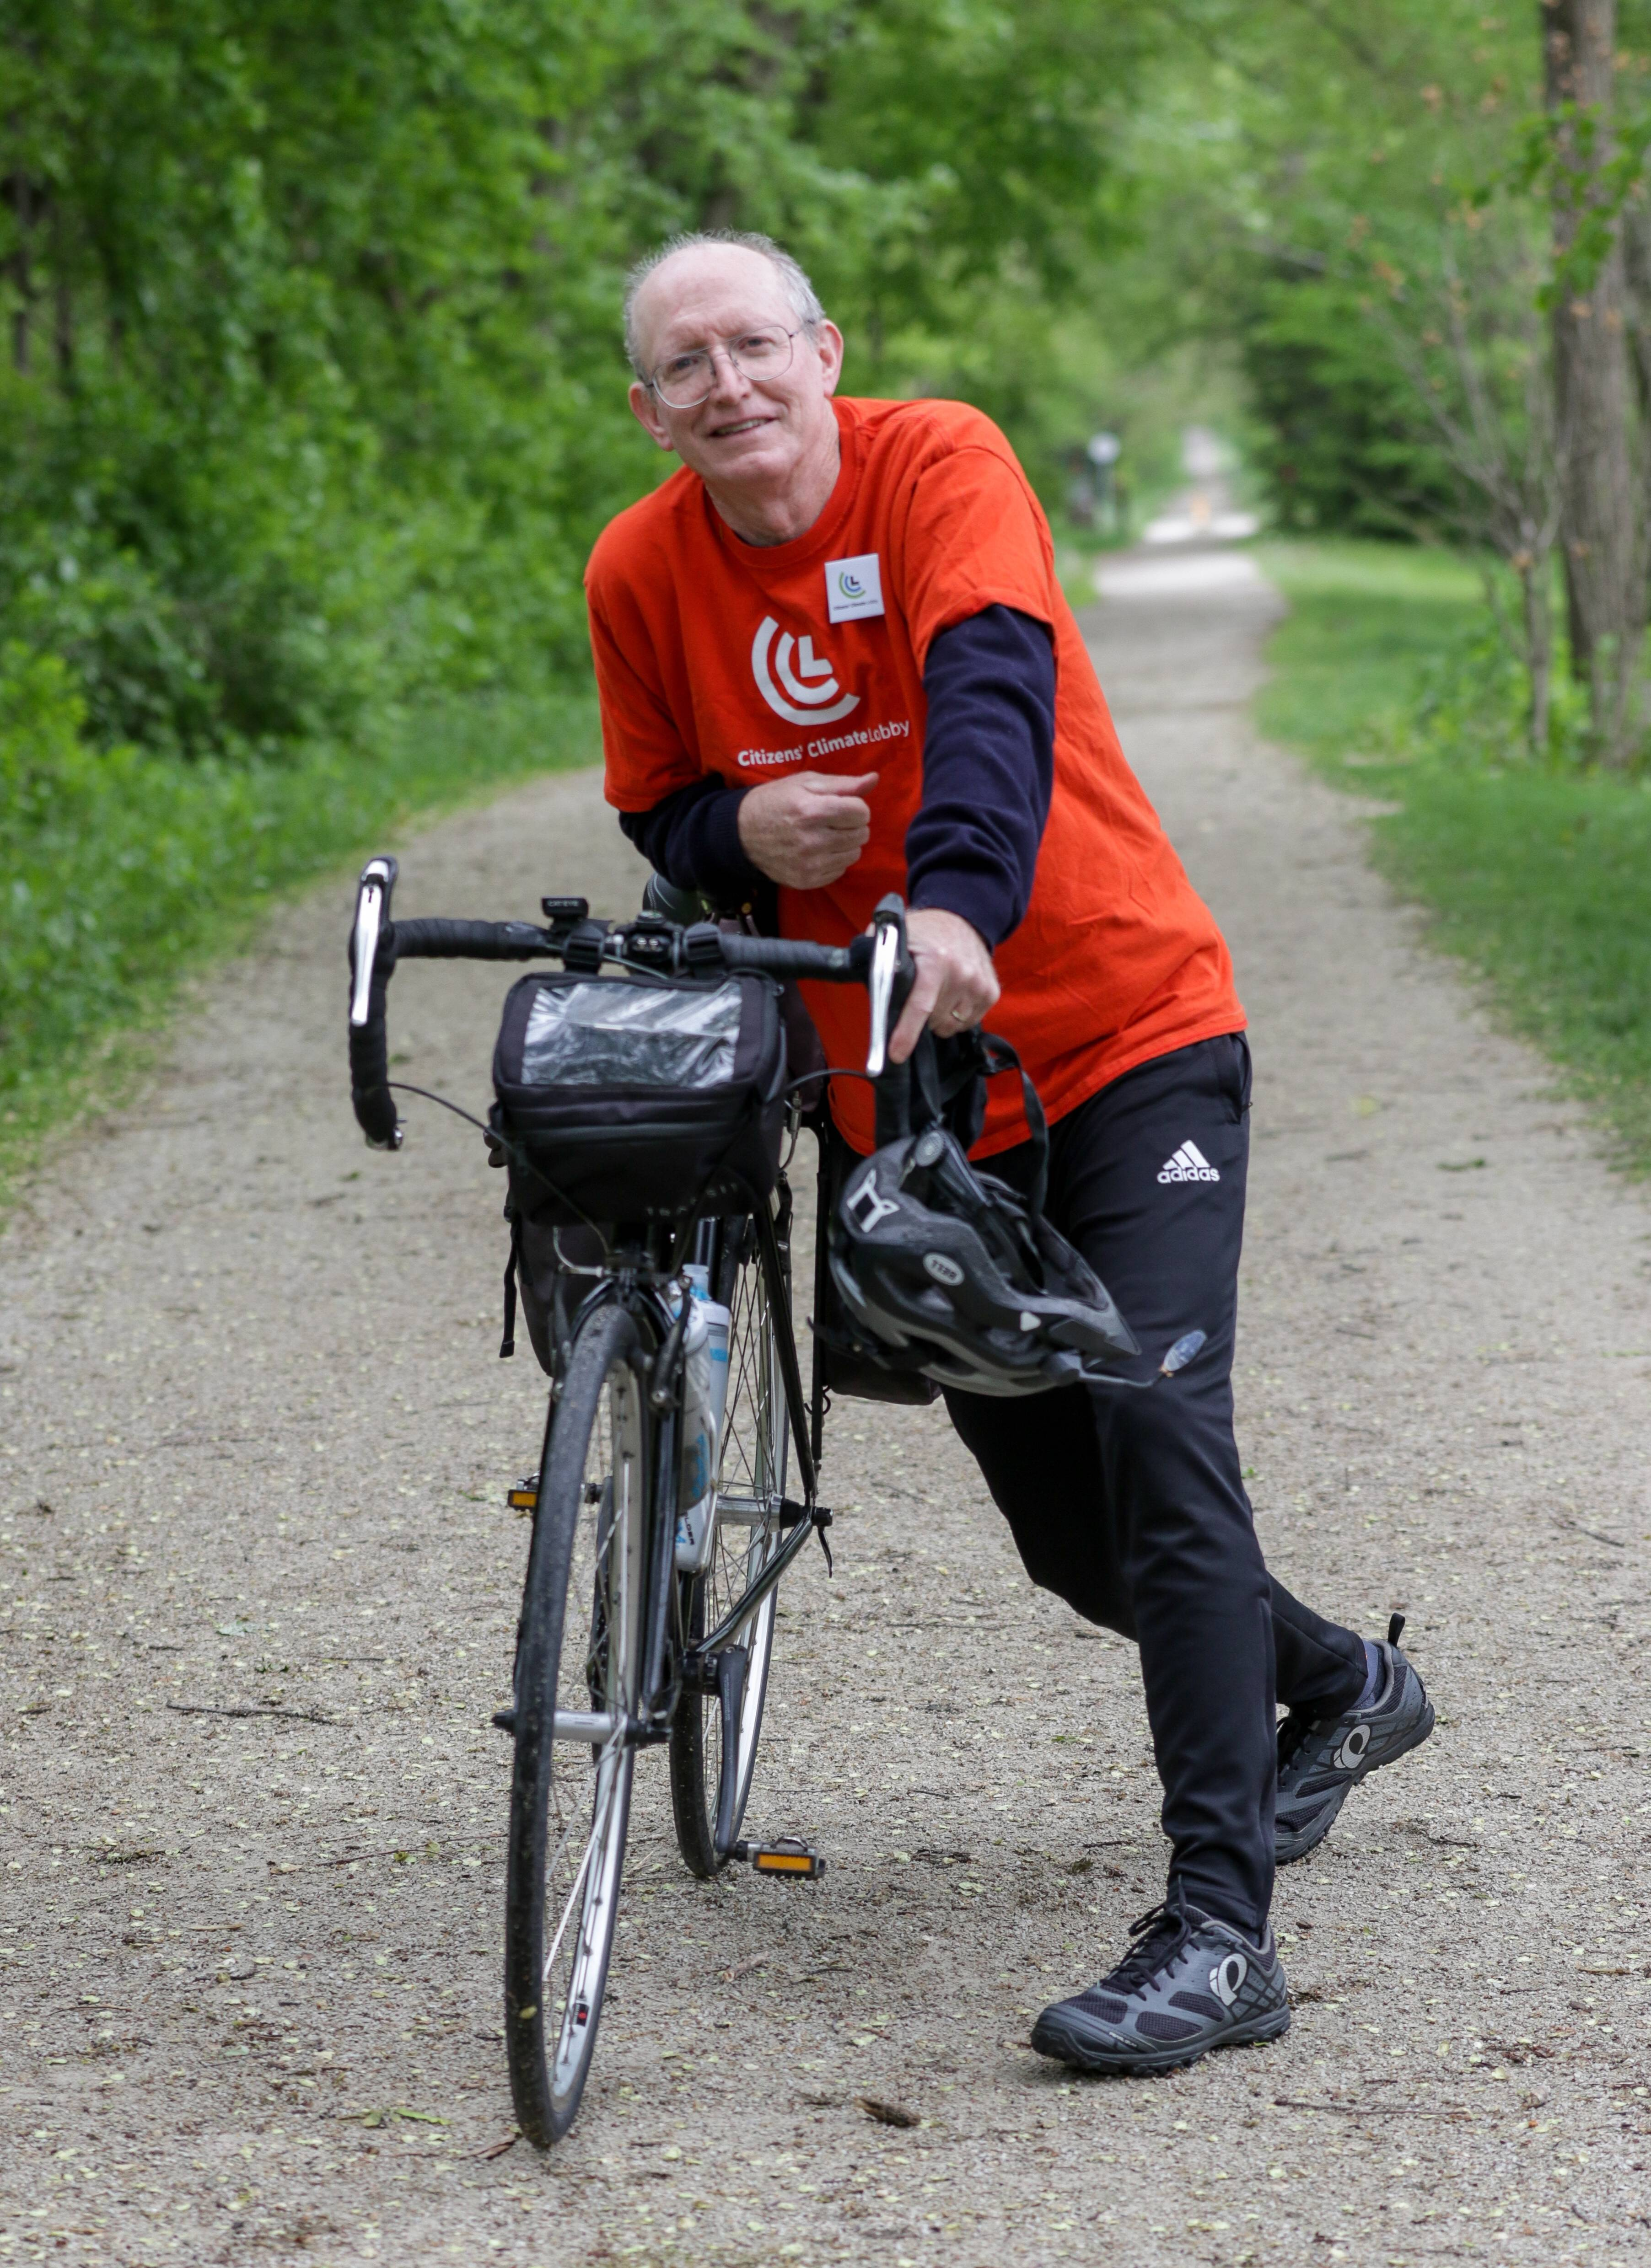 Retired physics teacher Mark Ailes, 63, of Lombard is a committed member of the Citizens' Climate Lobby and is leading a bicycle ride to Washington, D.C., to lobby Congress.